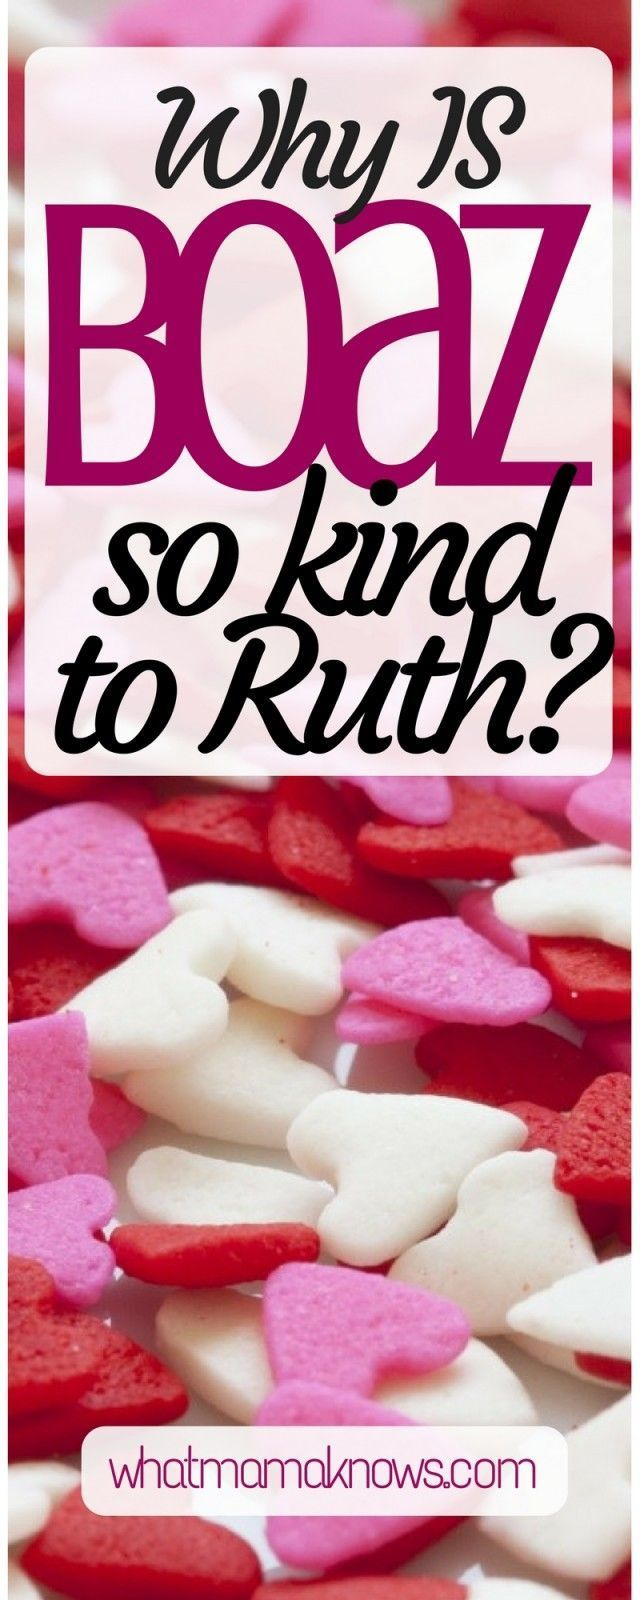 The Book of Ruth, Chapter 2: we meet Boaz! Why IS he so kind to Ruth? Does God Ruth just because she is amazing or has the covenant got something to do with it? Devotional Bible study for women  Christian encouragement for moms. wh